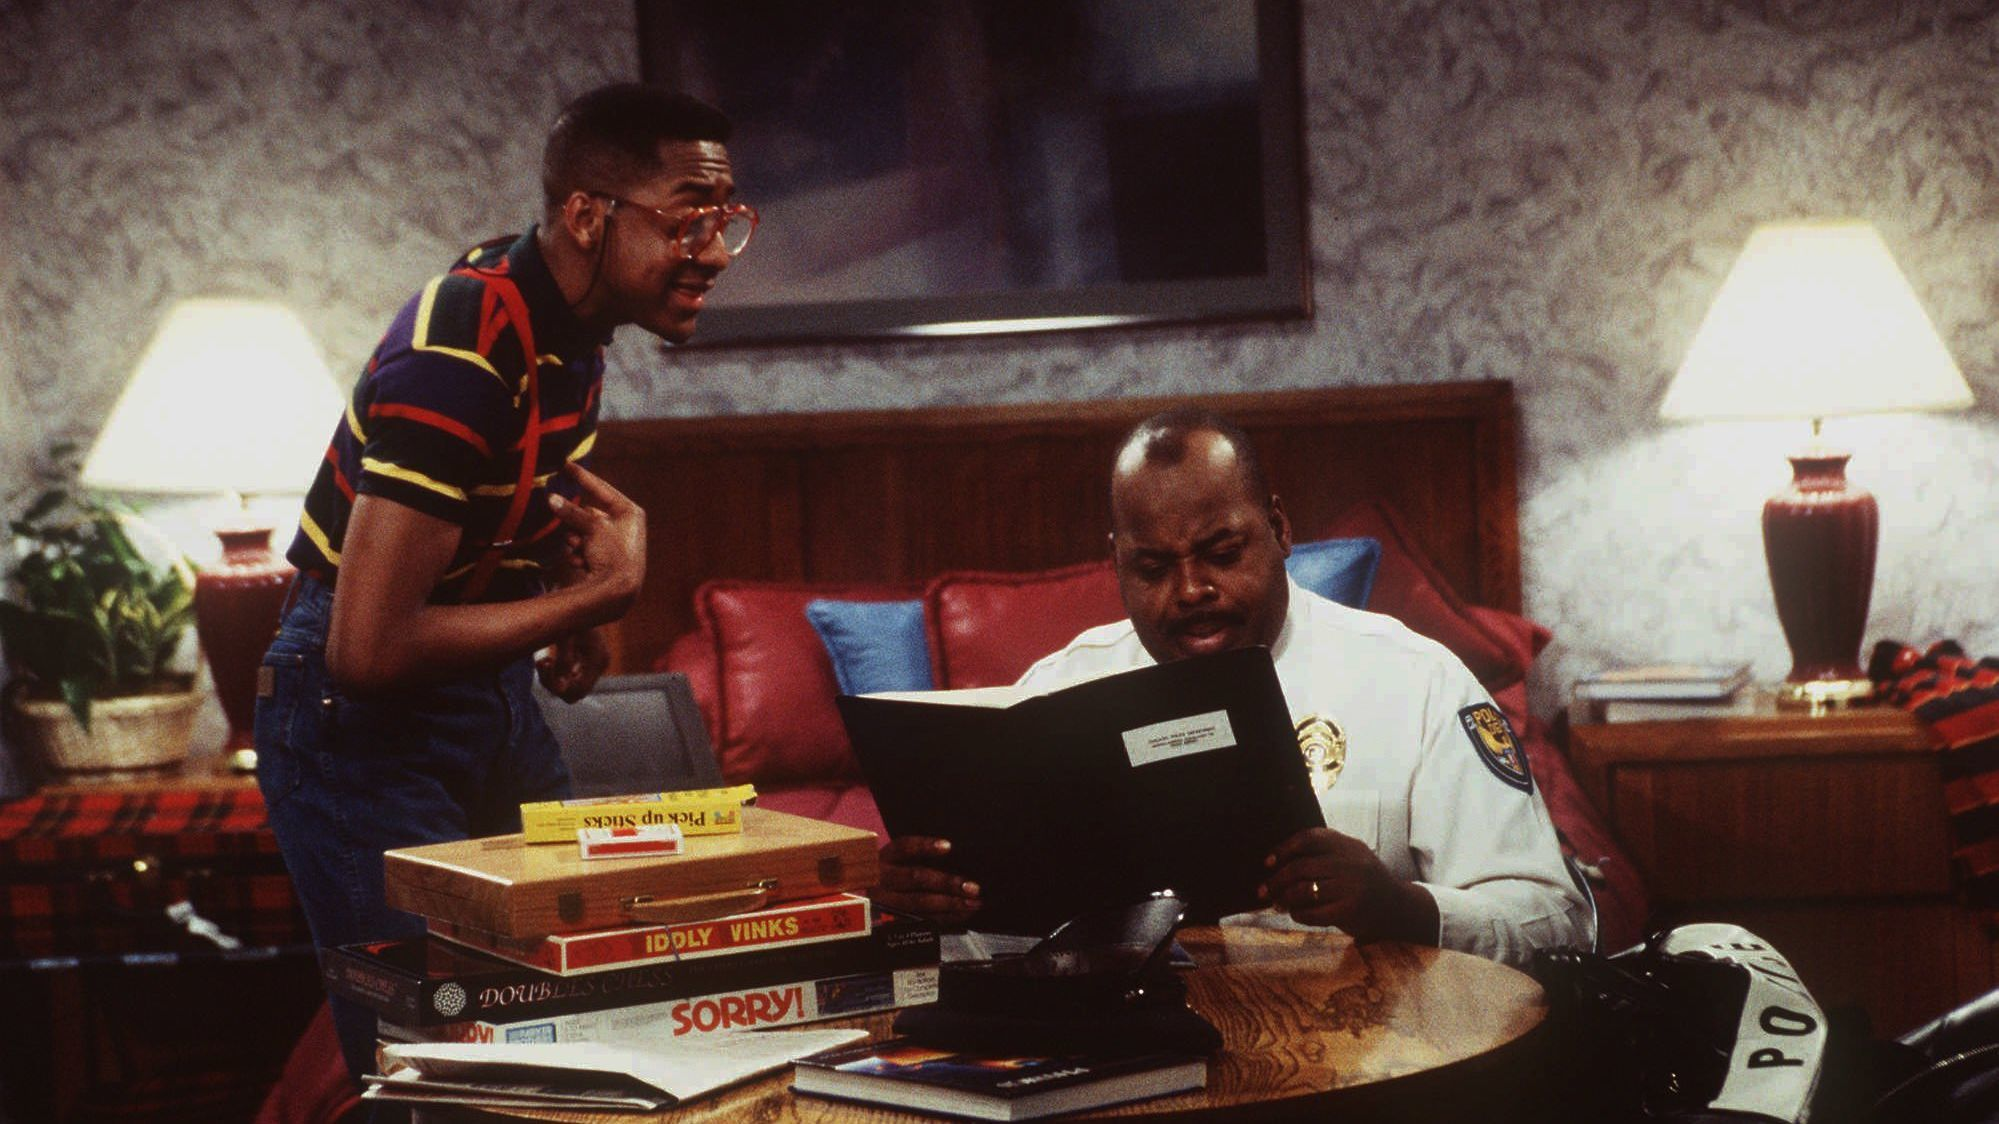 Hulu is reviving ABC's TGIF line-up